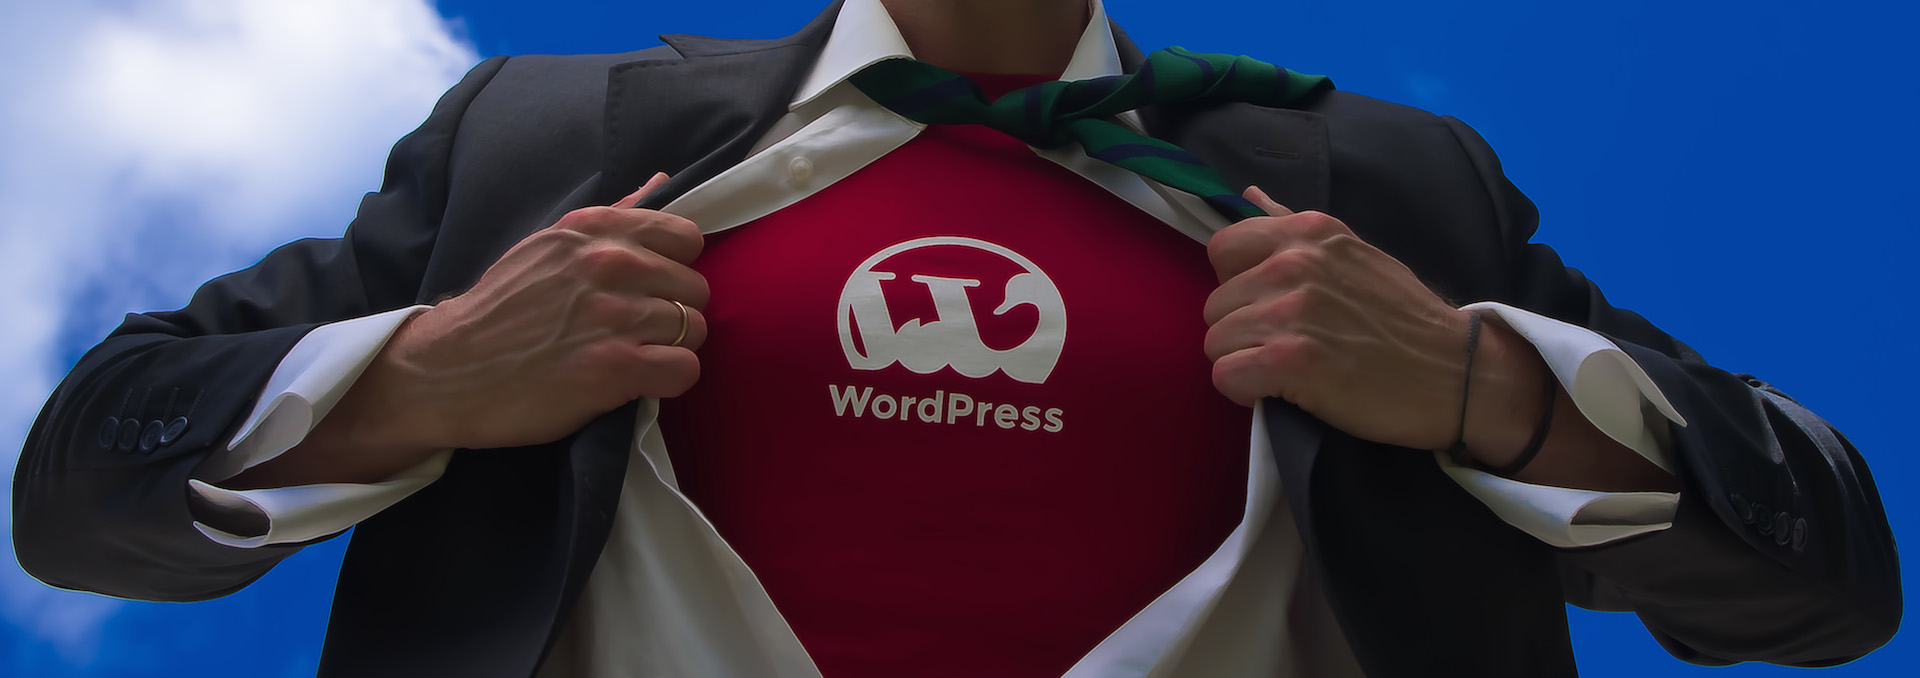 Businessman Wordpress superman